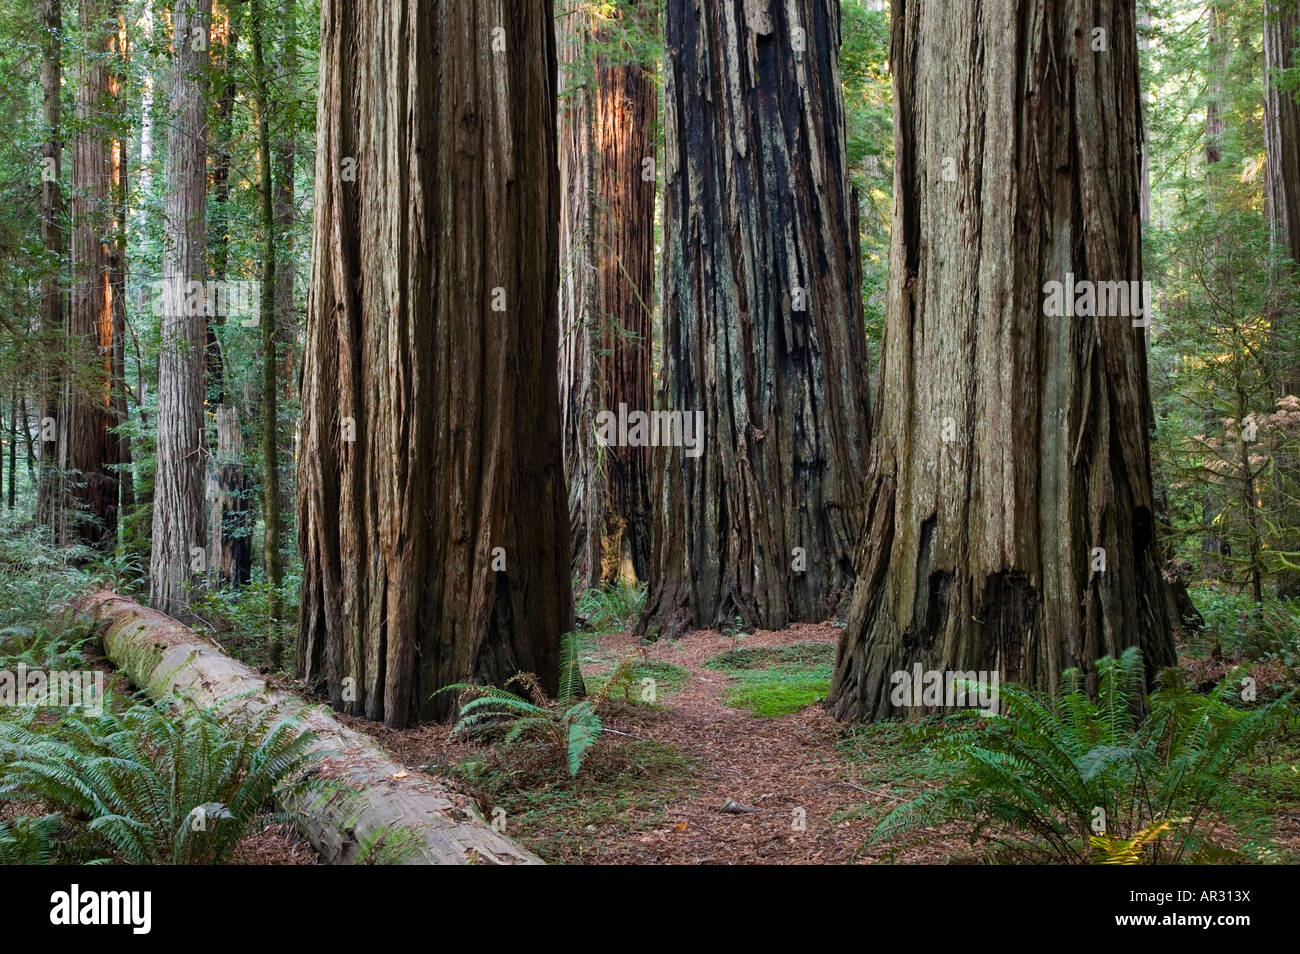 redwood trees in Stout Grove, Jedediah Smith Redwoods State Park, California, United States - Stock Image